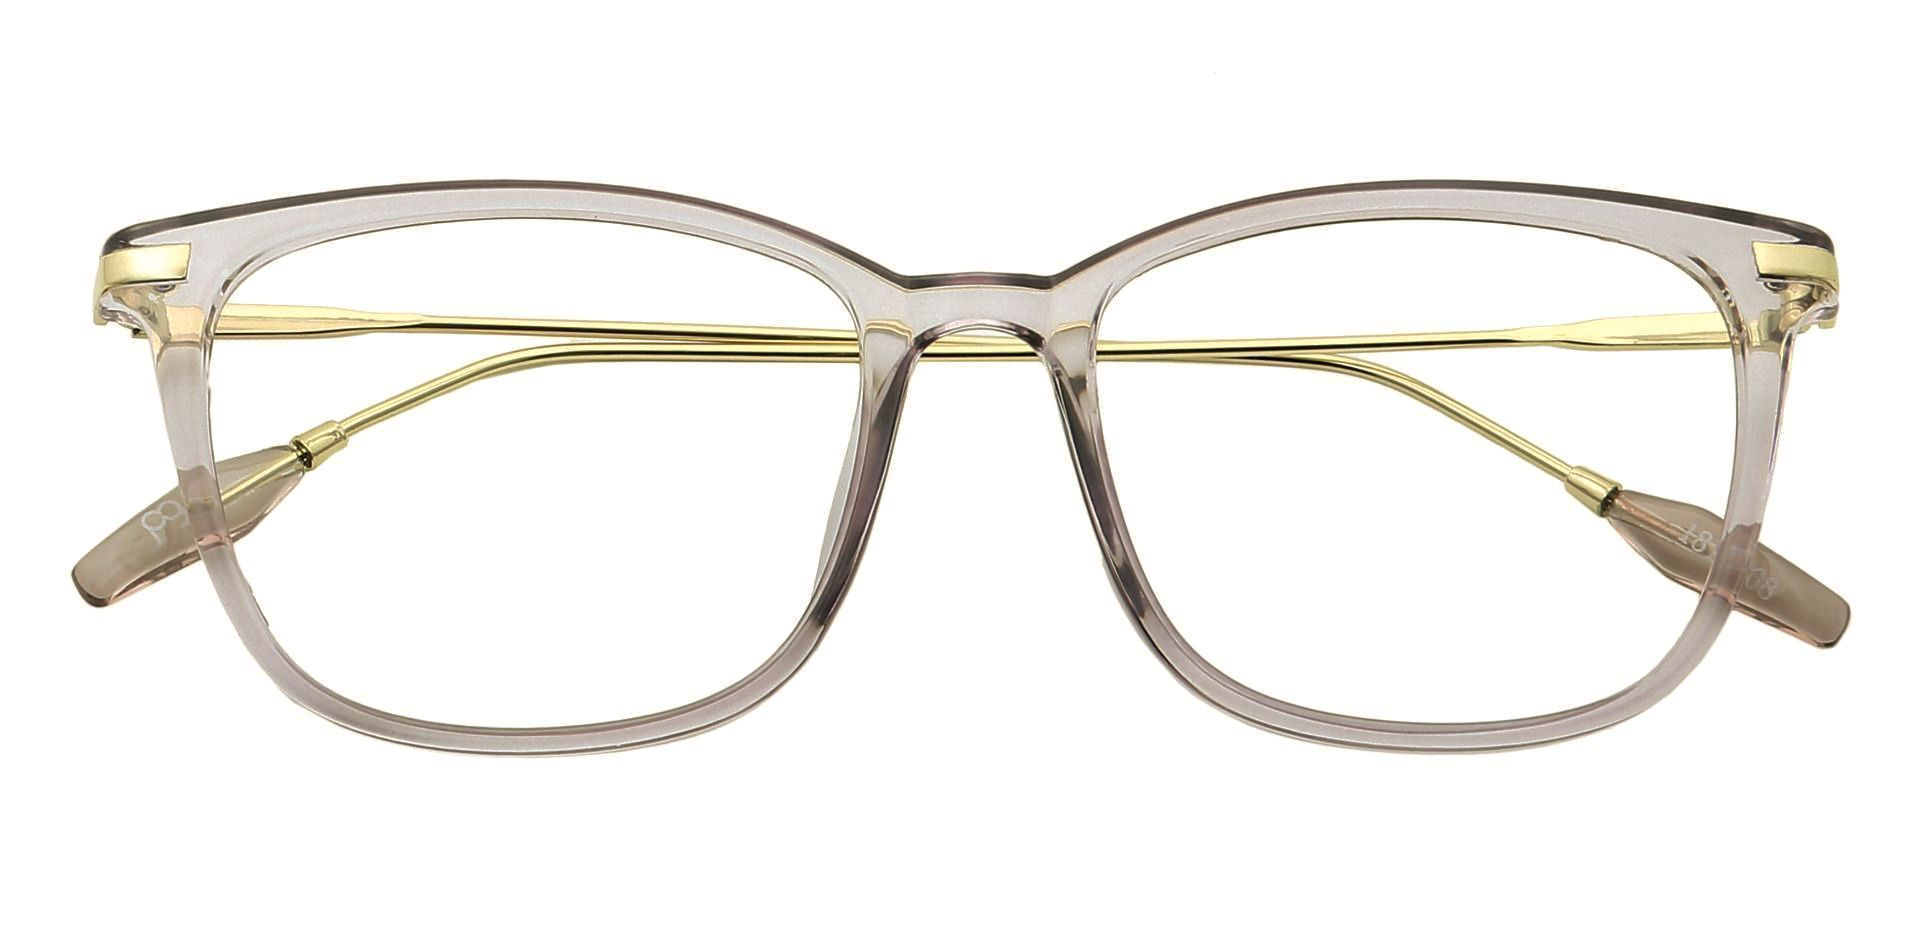 Katie Oval Non-Rx Glasses - The Frame Is Clear With Light Purple